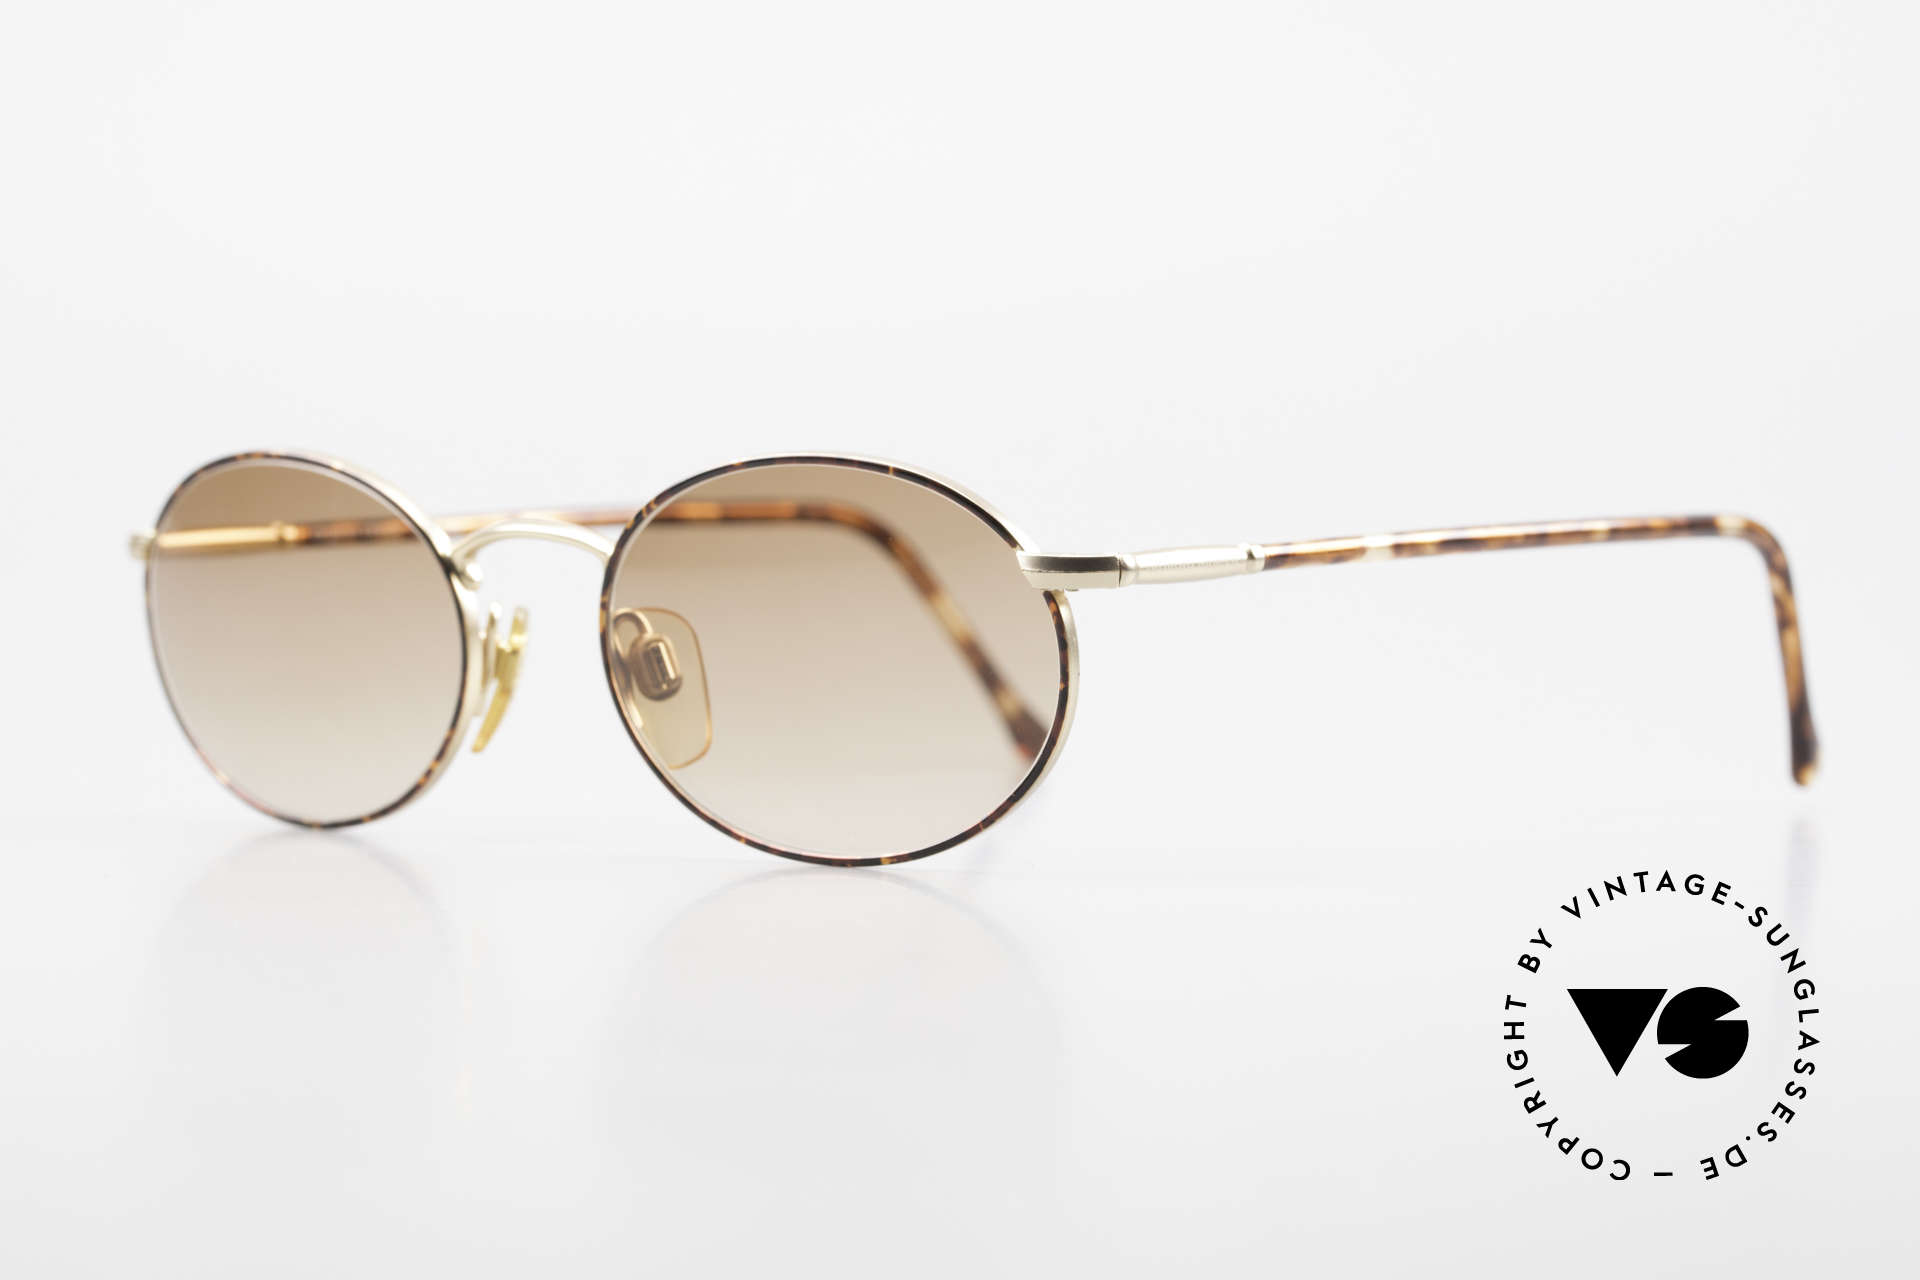 Giorgio Armani 192 80's Sunglasses Oval Vintage, never worn (like all our vintage 1980's Armani shades), Made for Men and Women